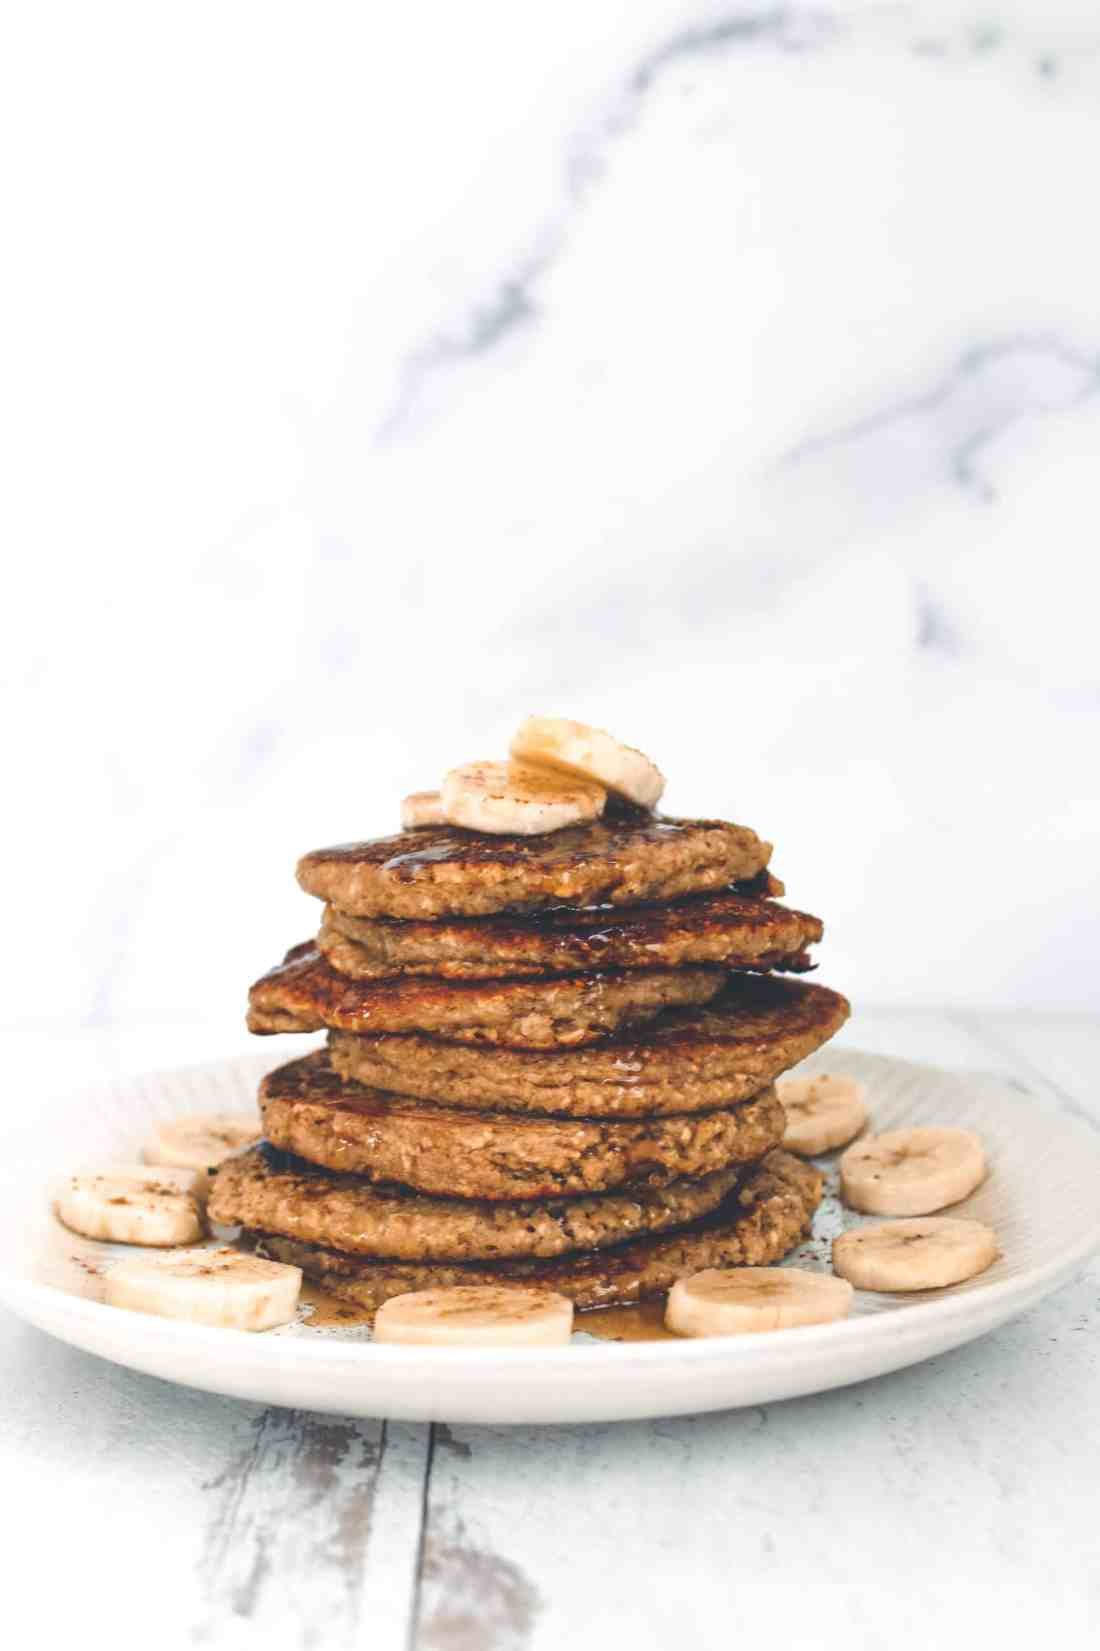 These naturally gluten free & vegan banana blender pancakes are filling, delicious, & make for a really easy & healthy breakfast everyone will enjoy!